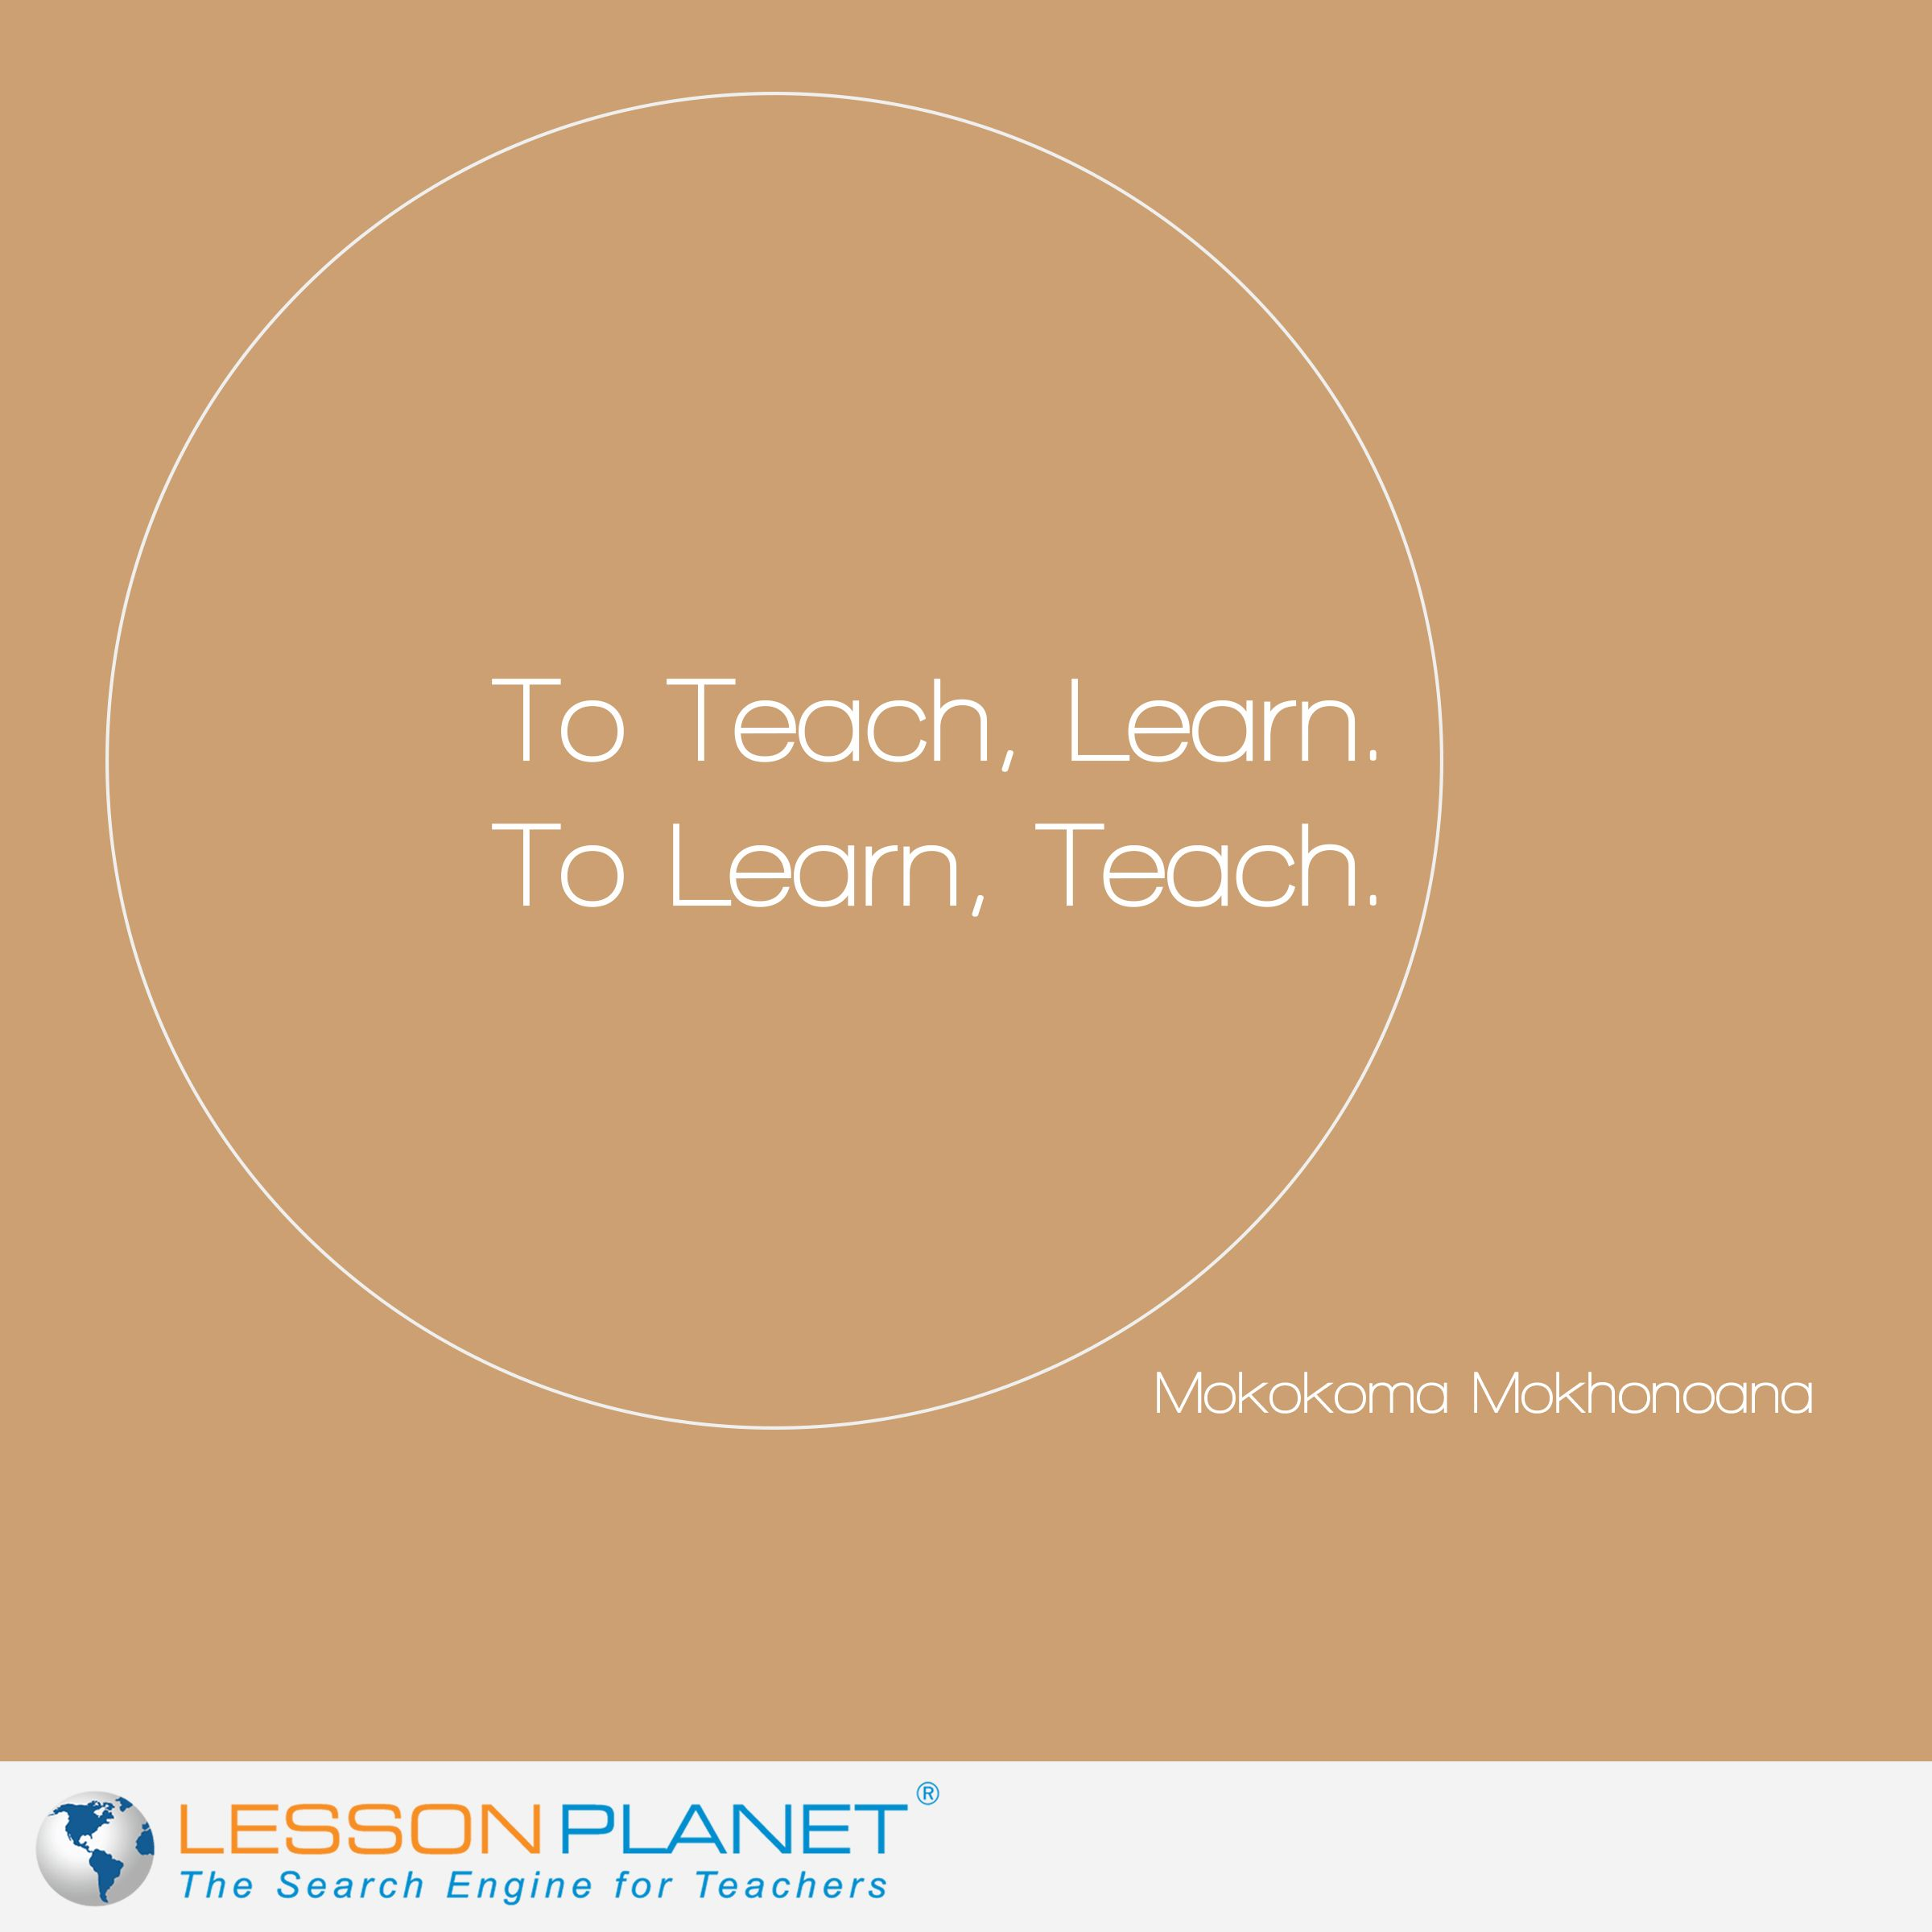 Inspirational Teaching Quotes Inspirational Quotes About Teachers And Teaching  Teacher